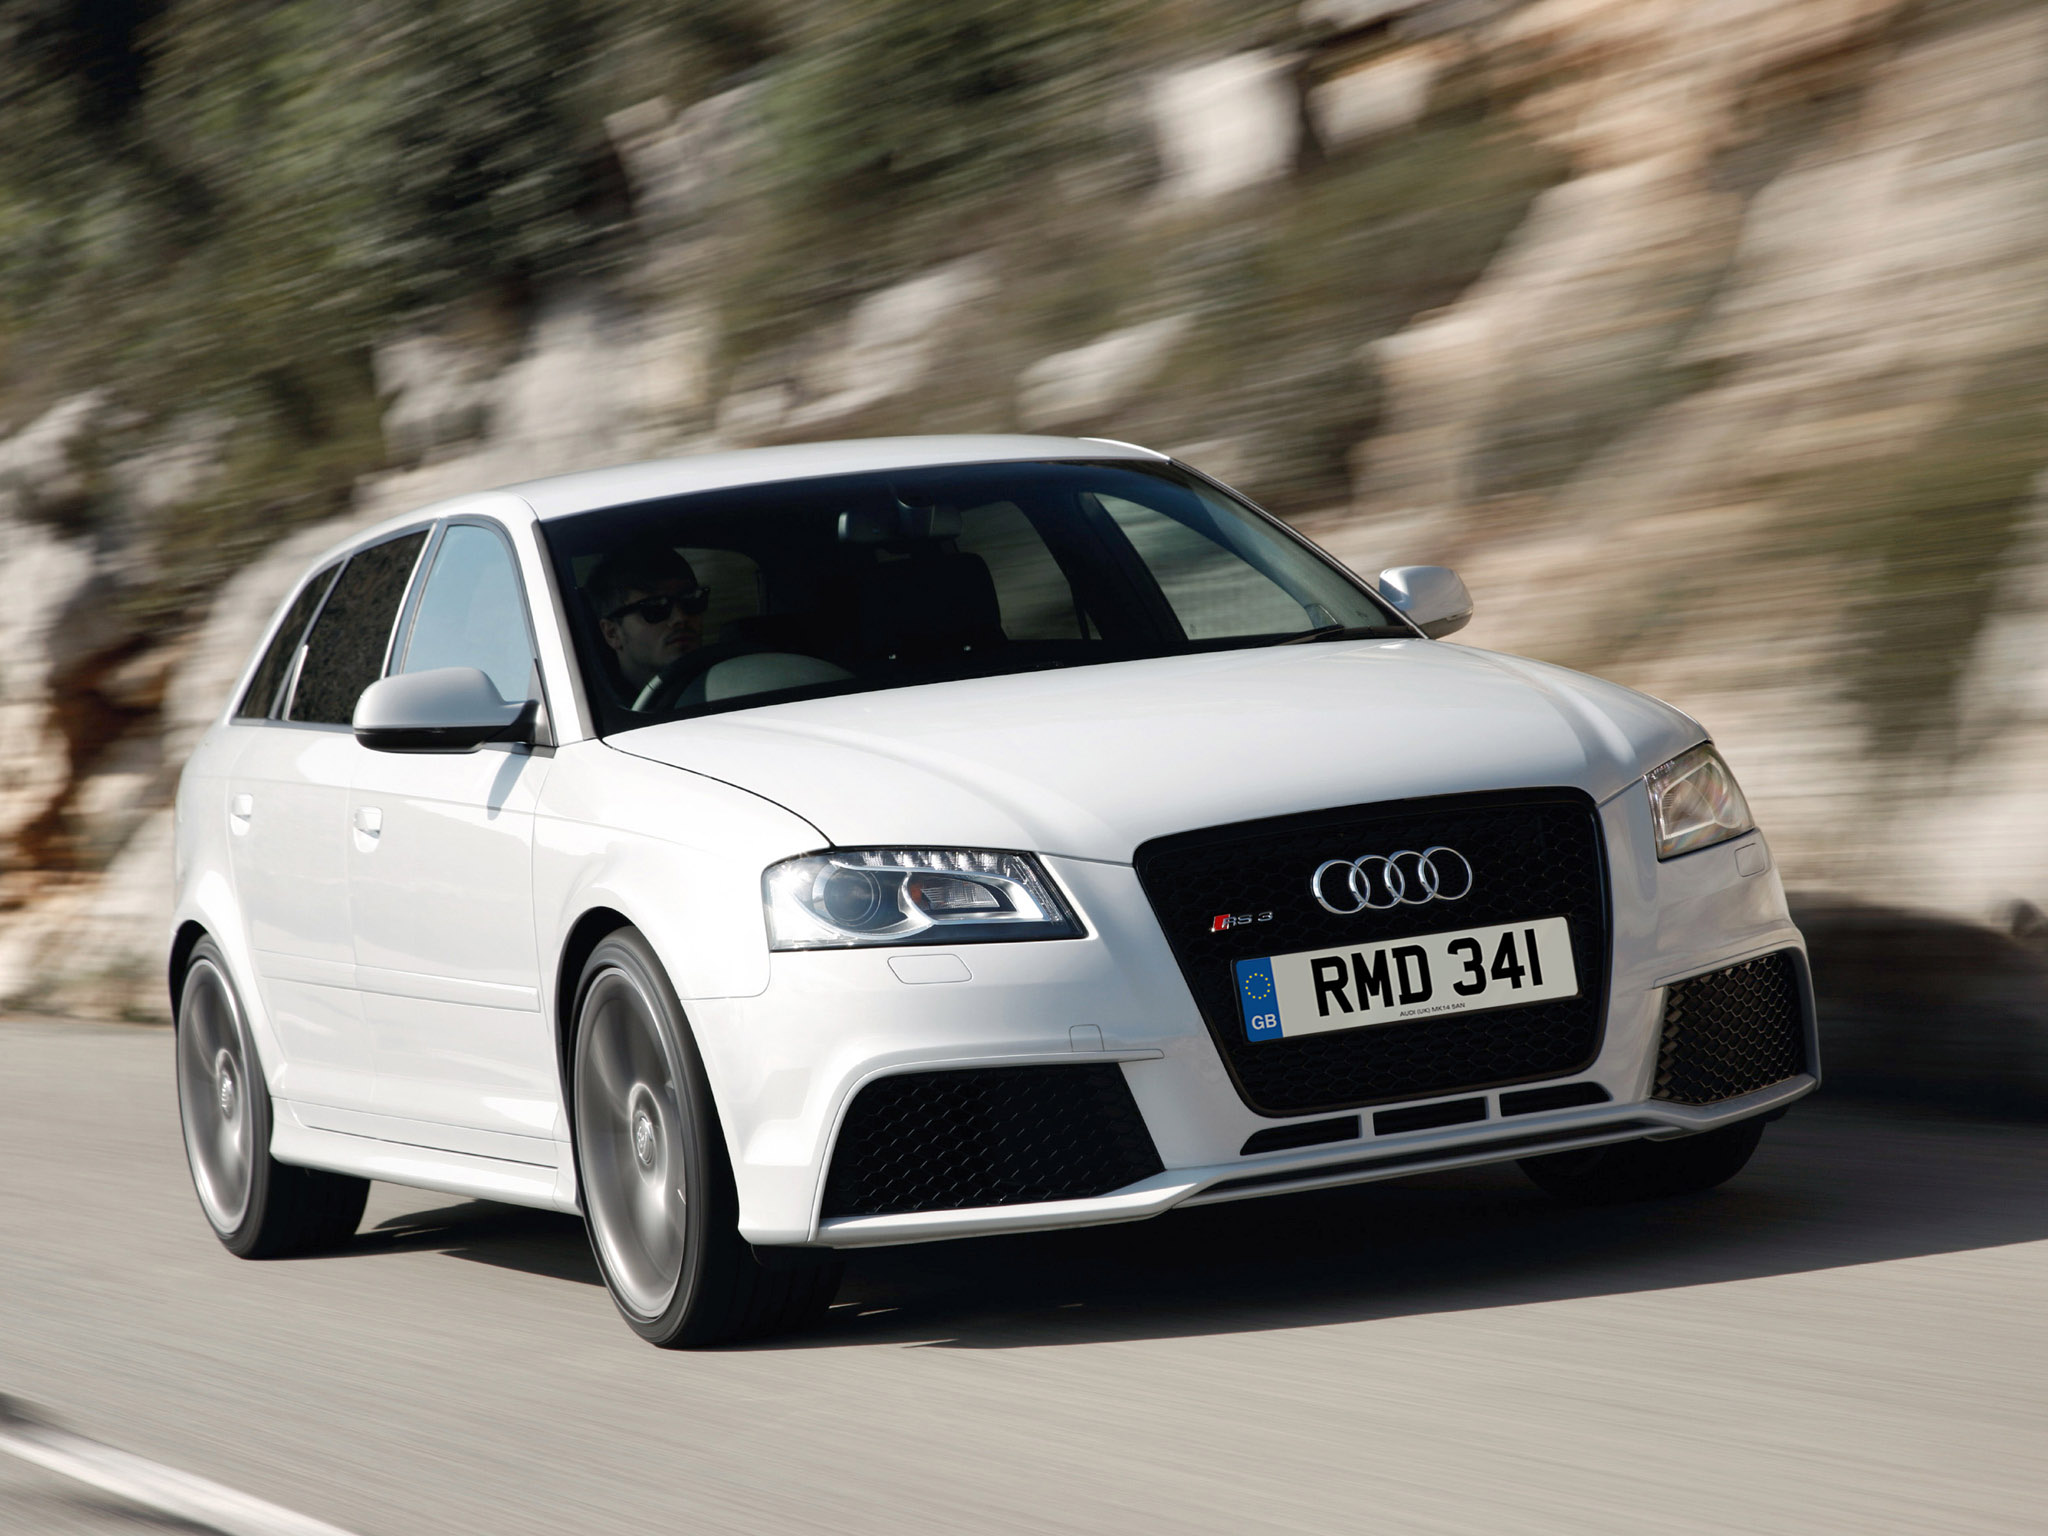 audi rs3 sportback uk 2010 audi rs3 sportback uk 2010 photo 16 car in pictures car photo gallery. Black Bedroom Furniture Sets. Home Design Ideas